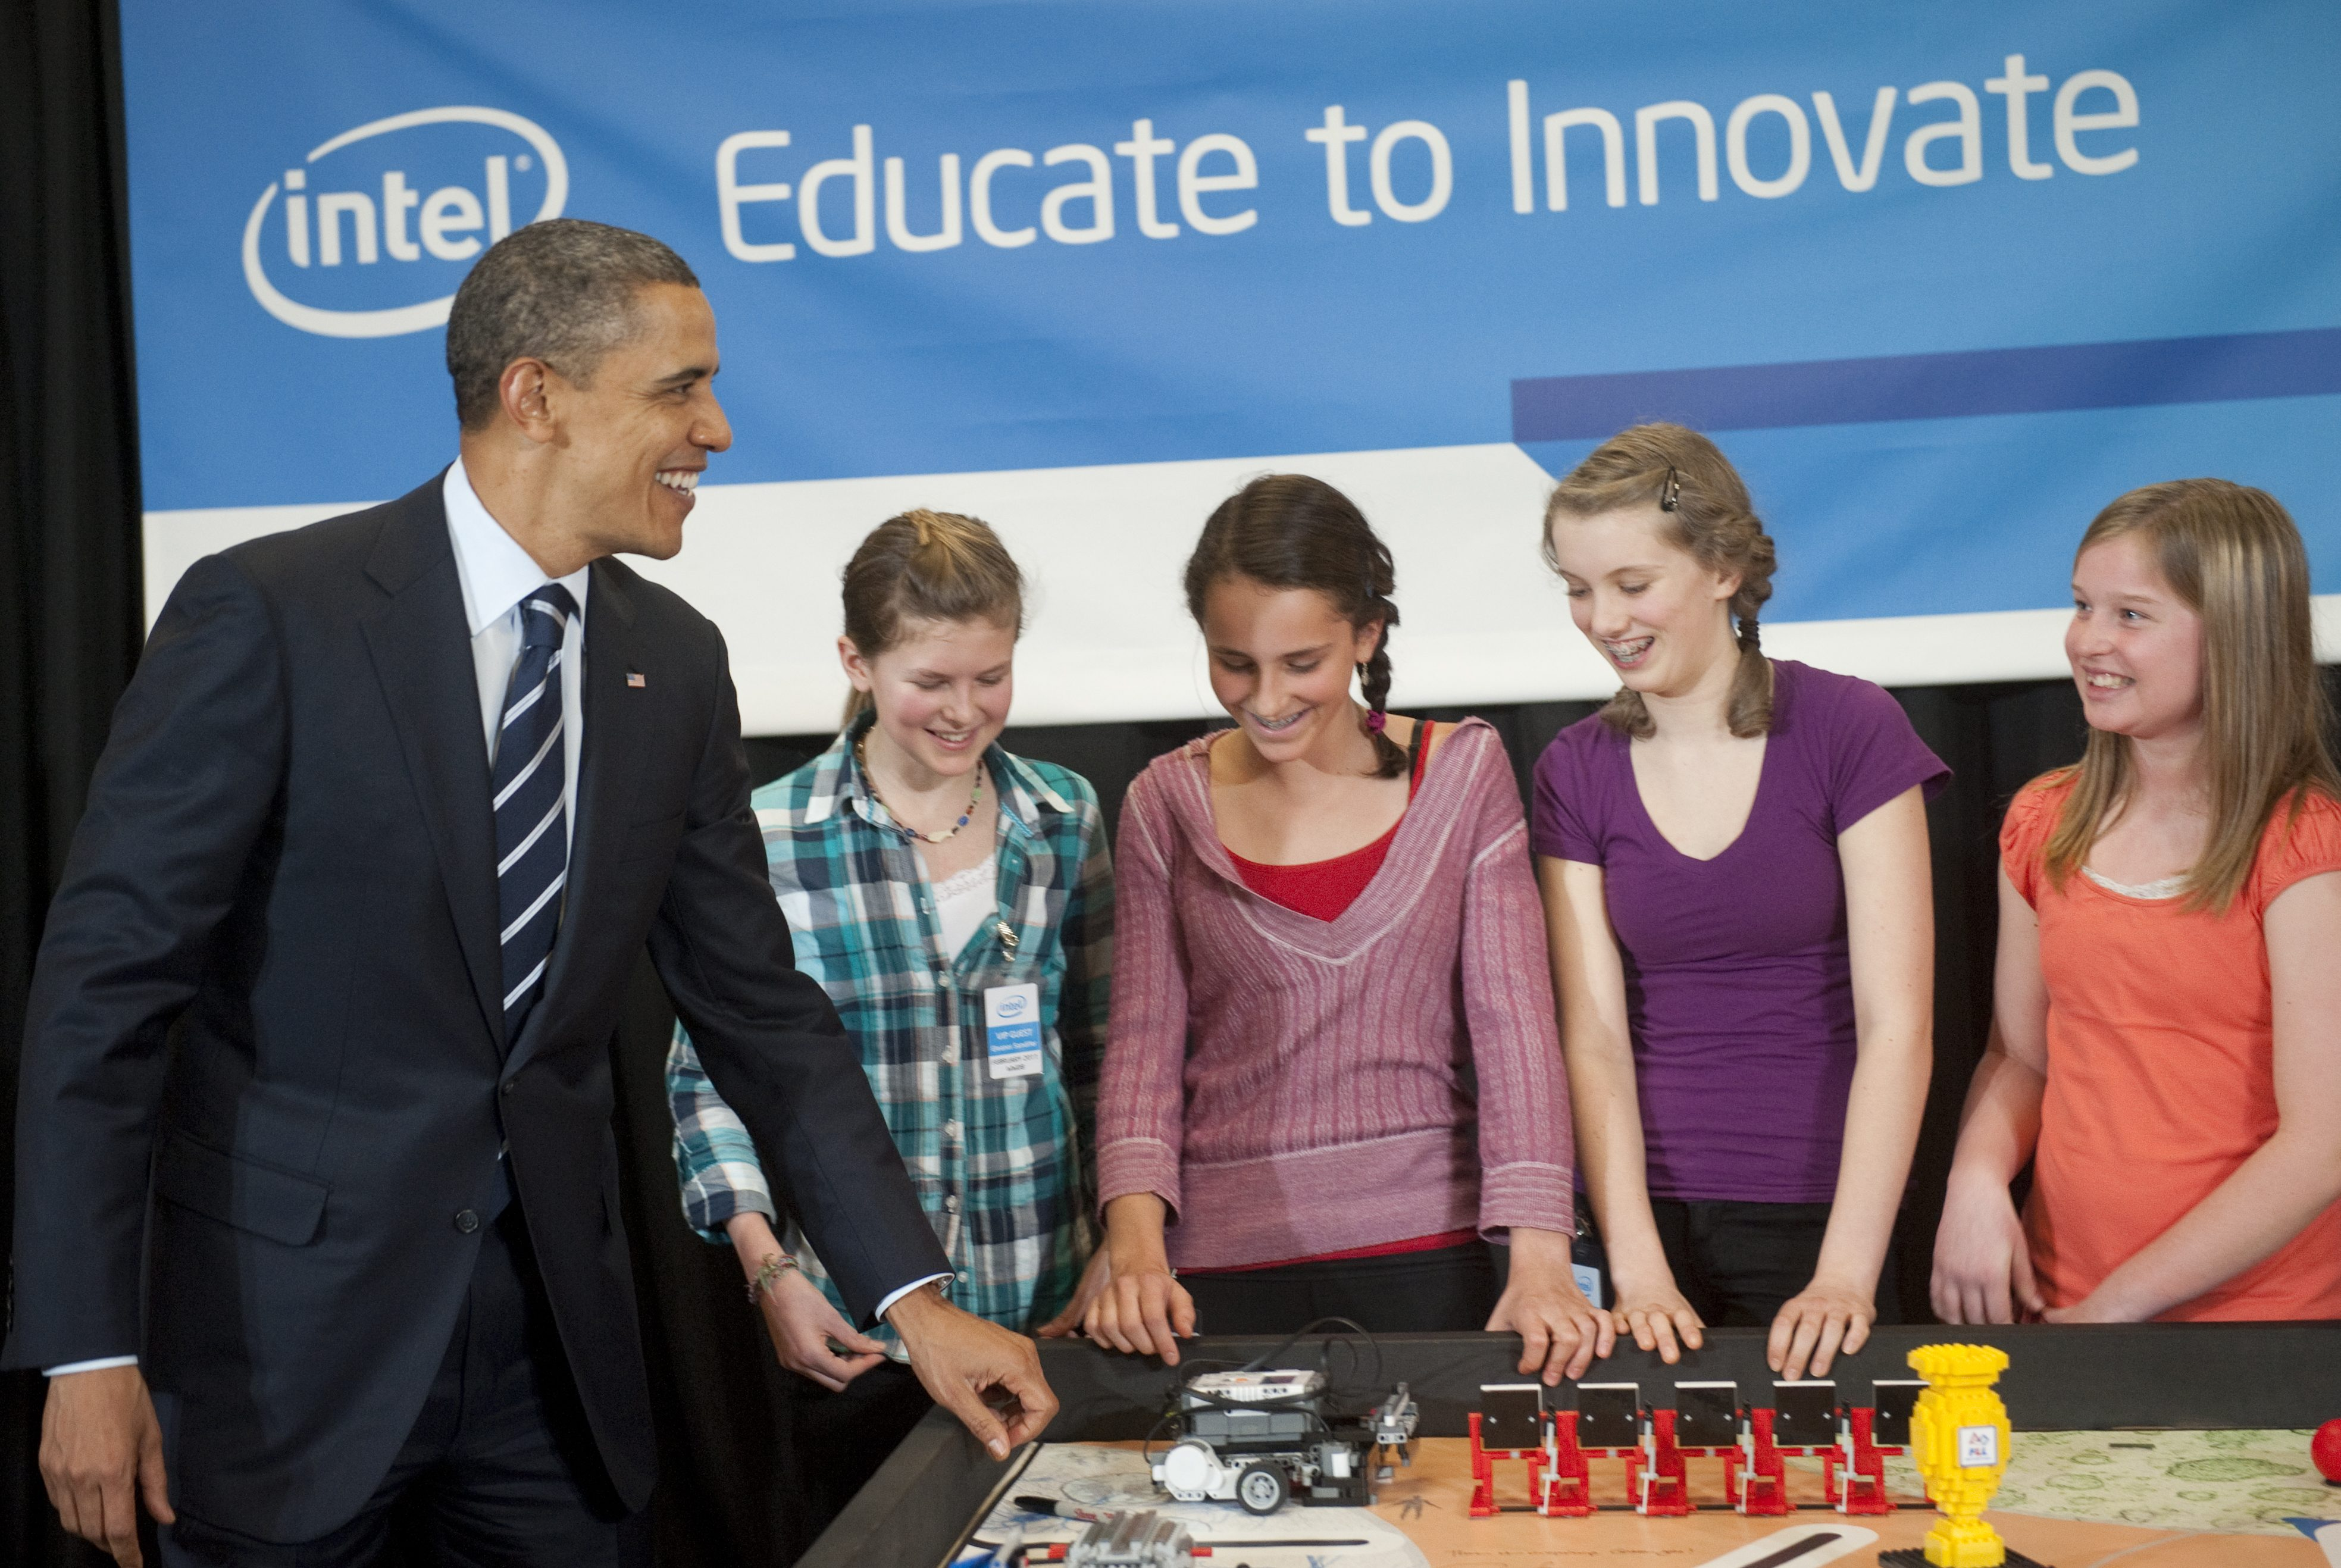 US President Barack Obama speaks with Intel Science Talent Search finalists, 7th graders from the BindleBot Intel First LEGO Robotics Team from Robert Gray Middle School, during a student demonstration at Intel in Hillsboro, Oregon, on February 18, 2011.        AFP PHOTO / Saul LOEB (Photo credit should read SAUL LOEB/AFP/Getty Images)